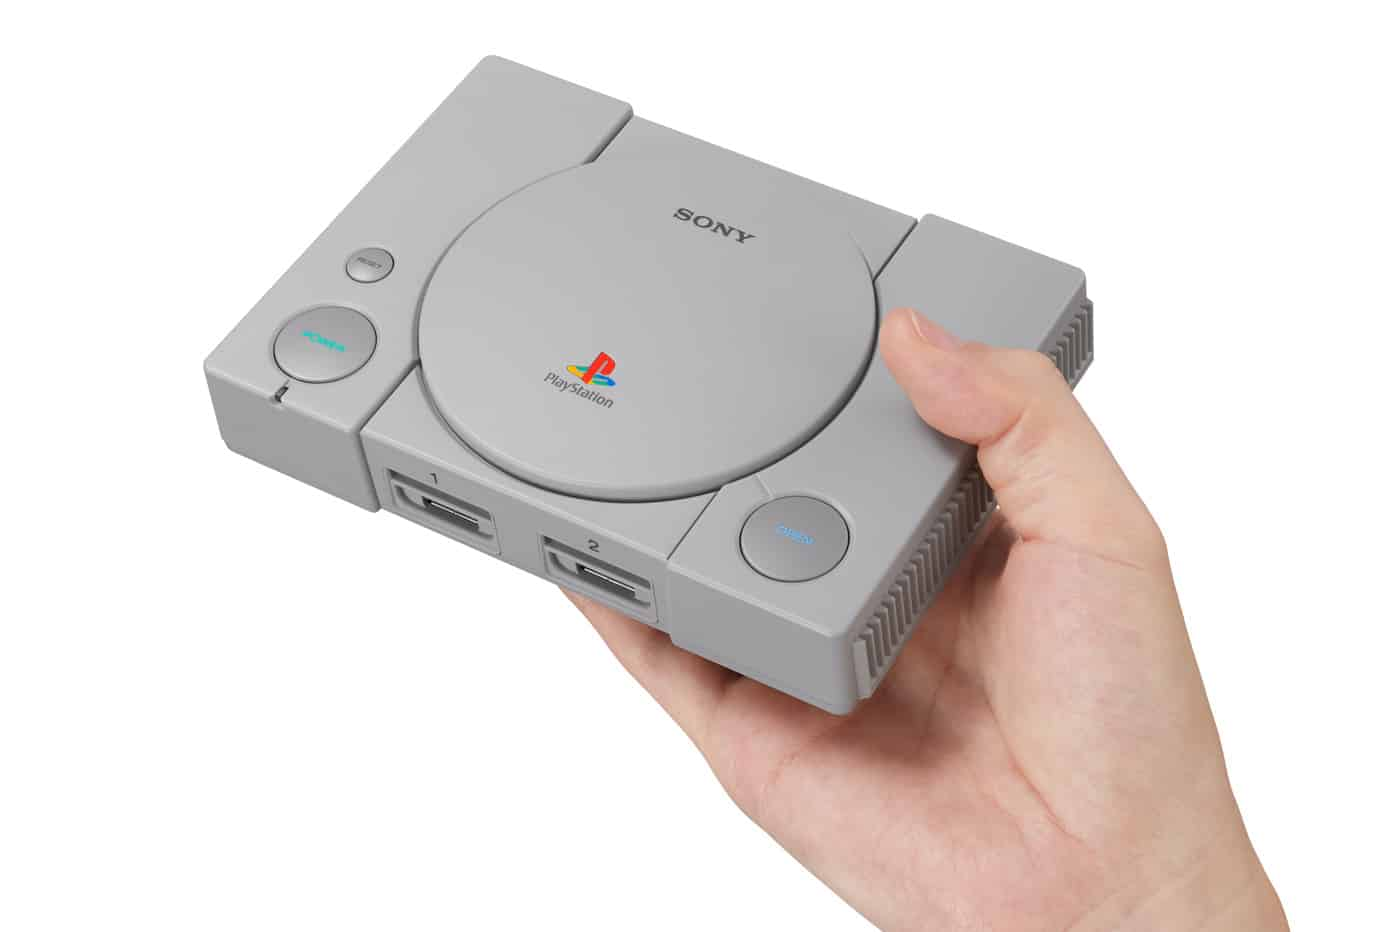 Playstation Classic hand size